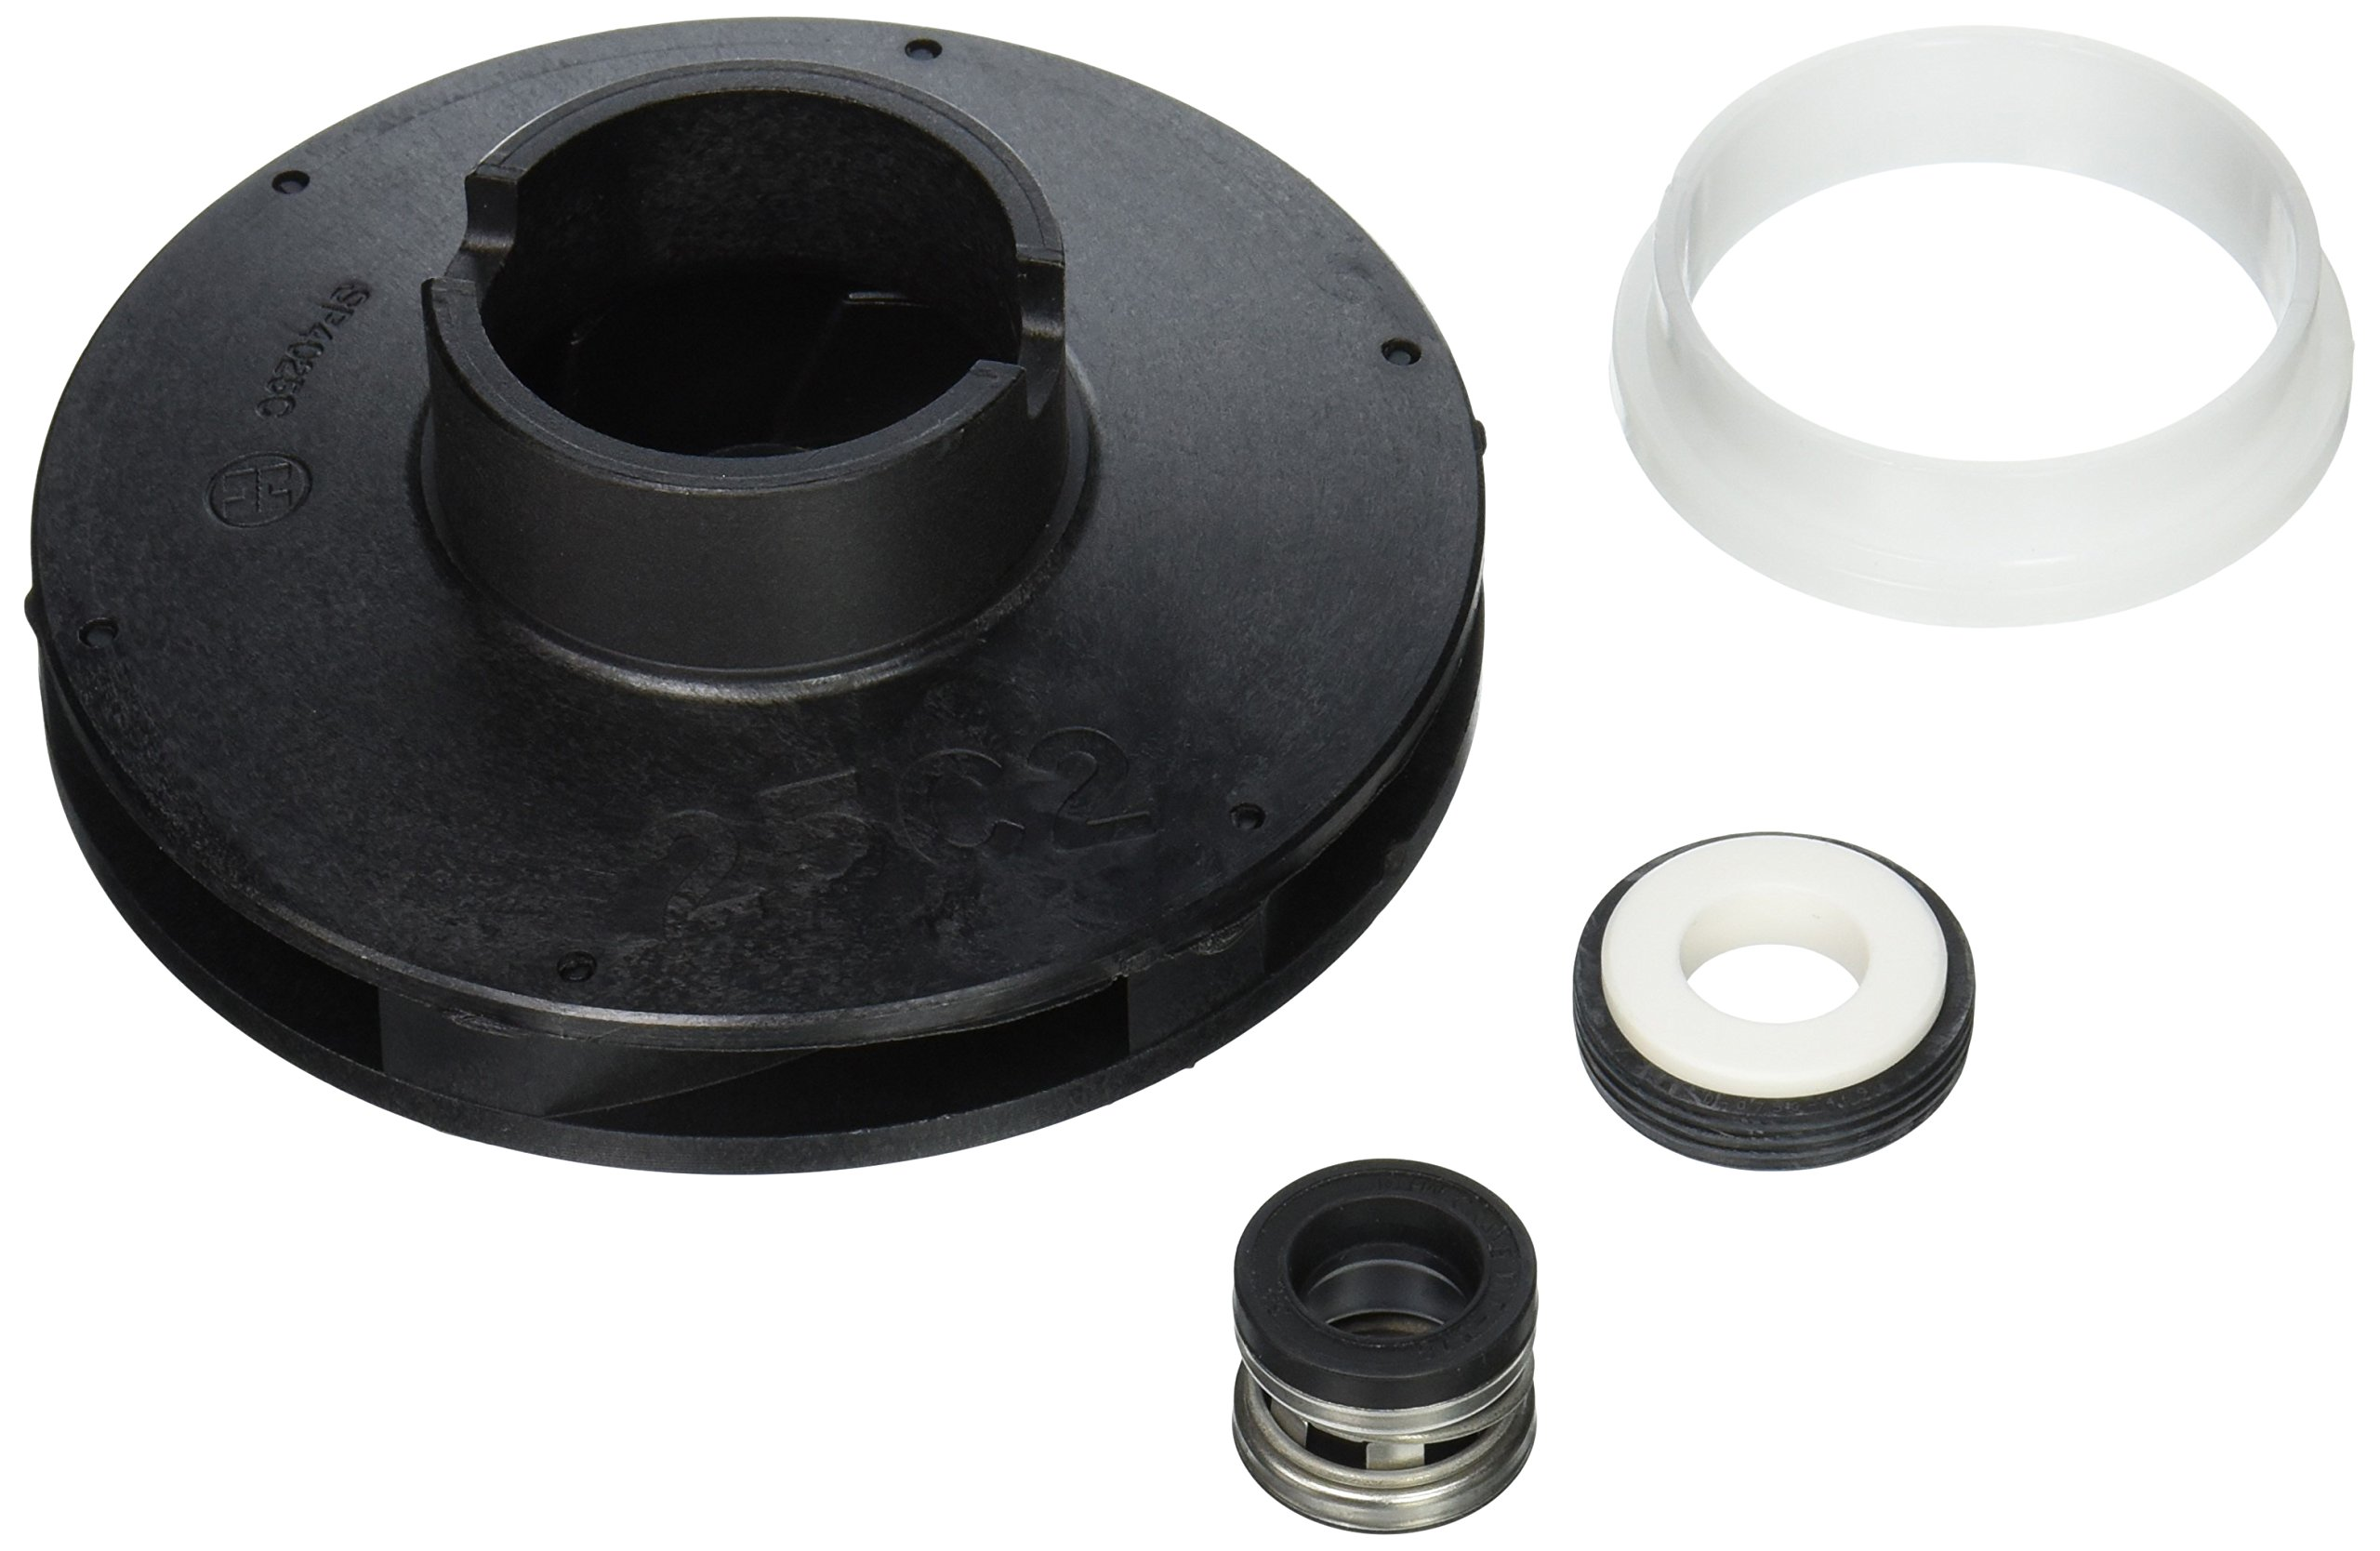 Hayward SPX4025CKIT 2-1/2-Horsepower Impeller Assembly with Ring and Seal Replacement Kit for Select Hayward Pump